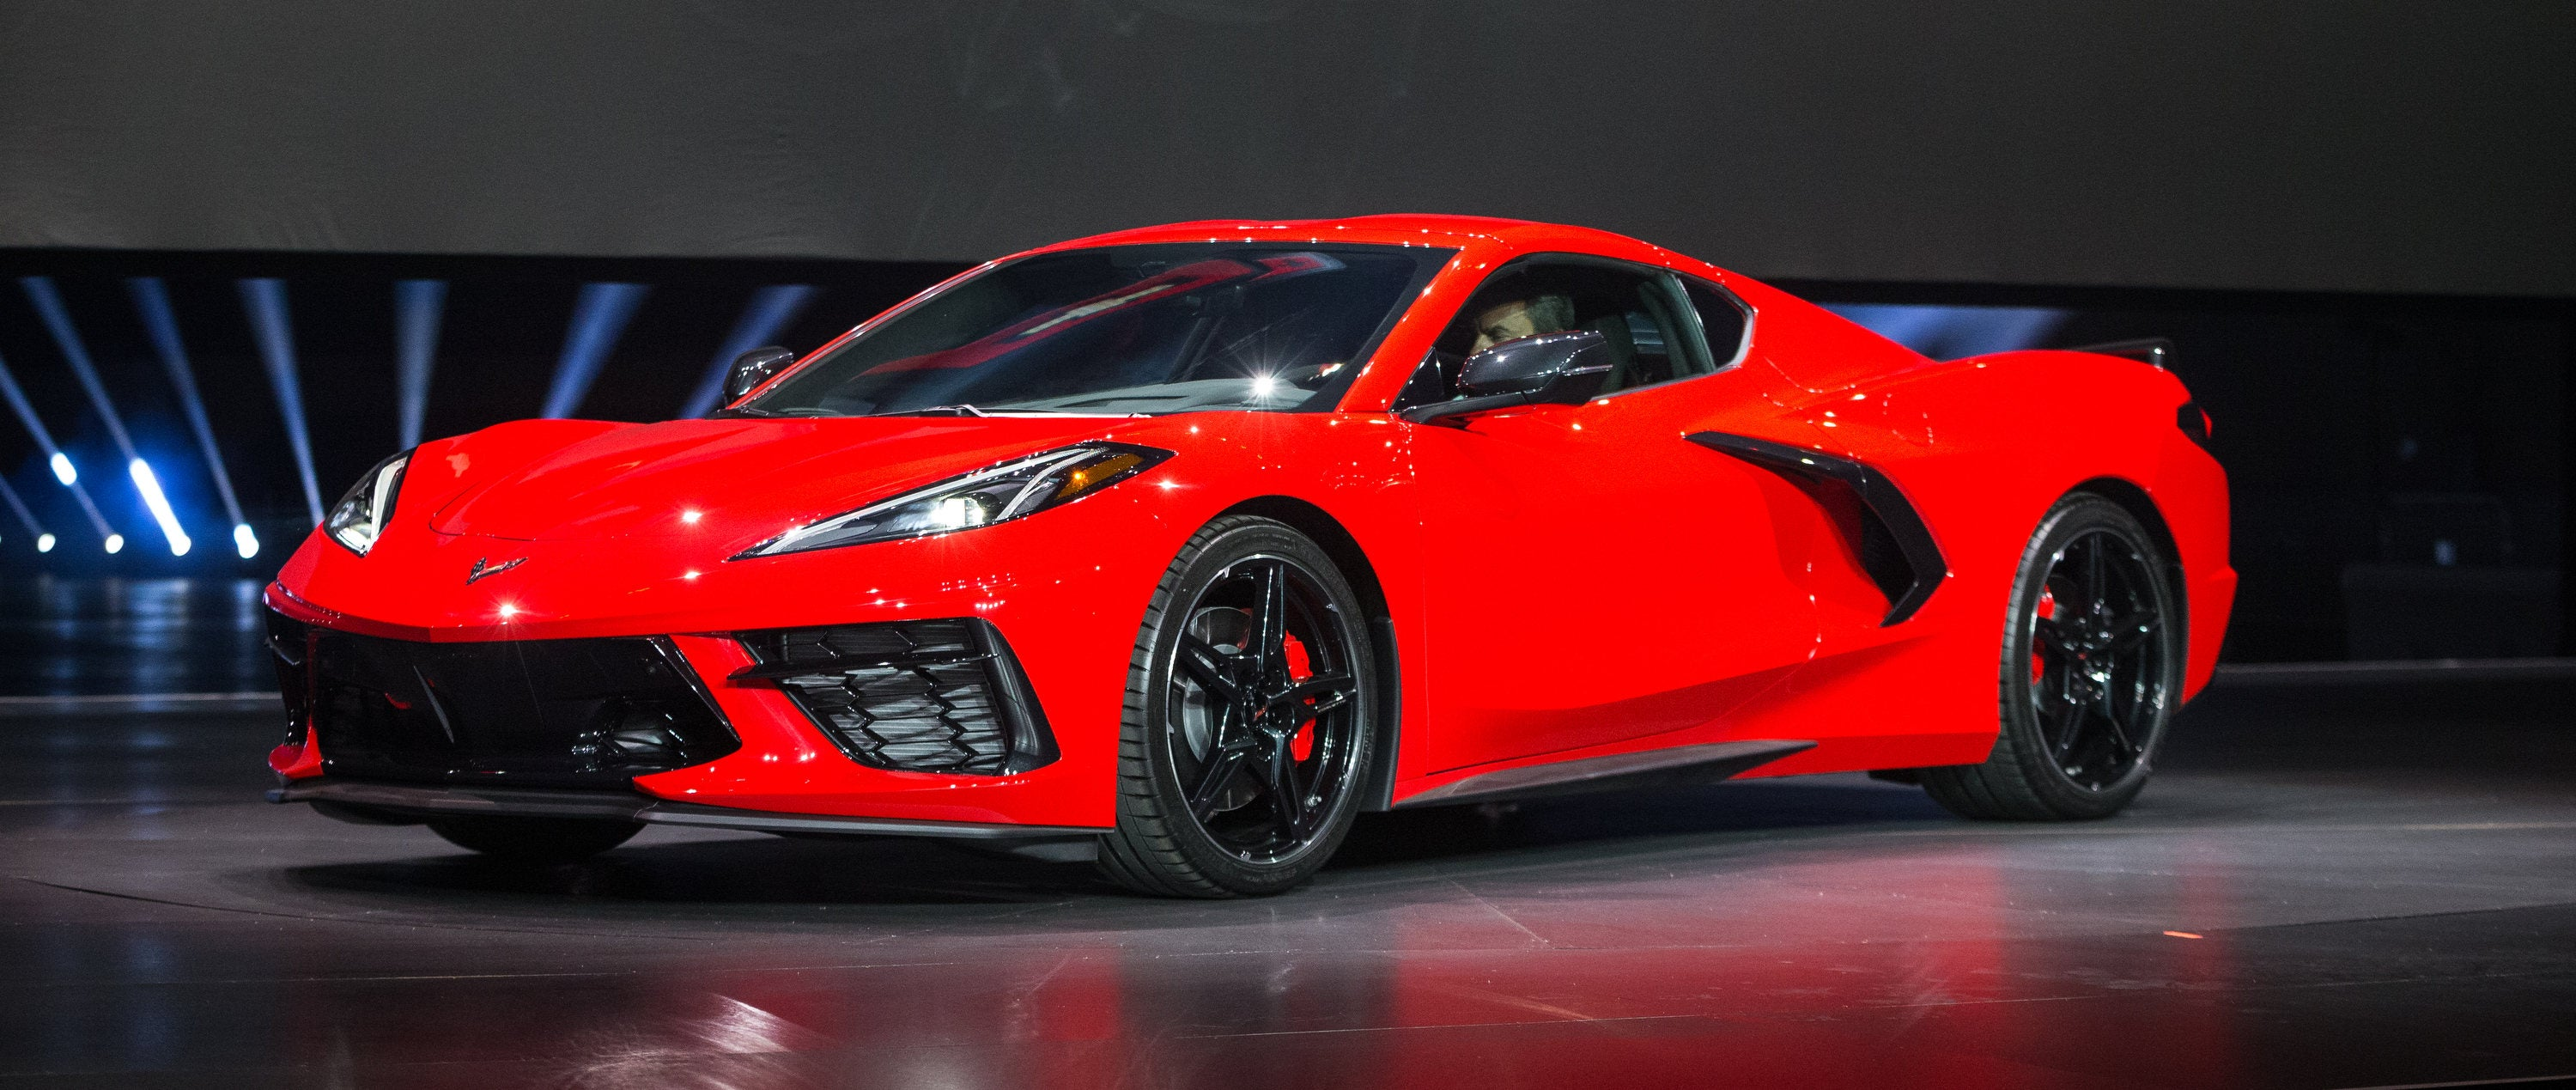 GM Wants to Turn the Corvette Into an Crossover SUV